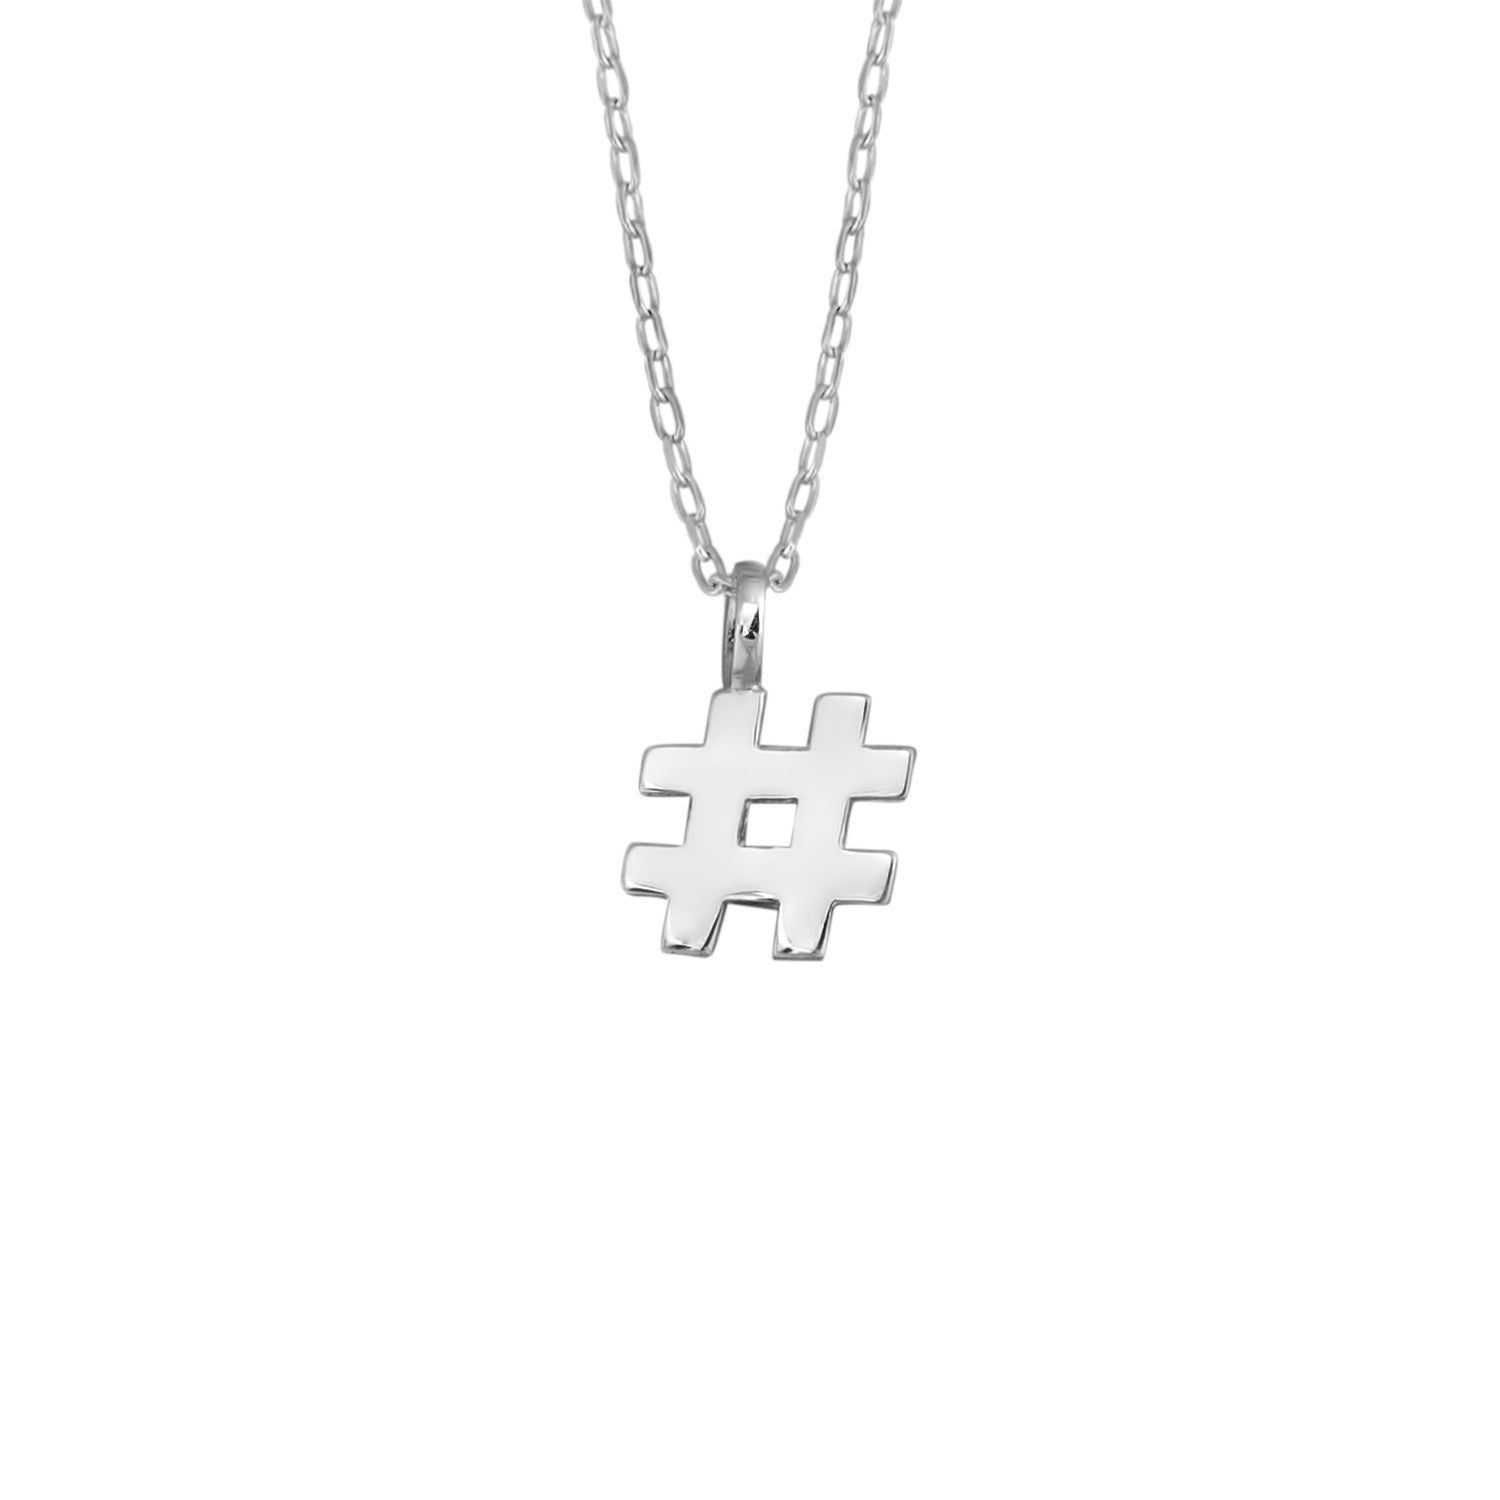 Hashtag # Pendant in Sterling Silver